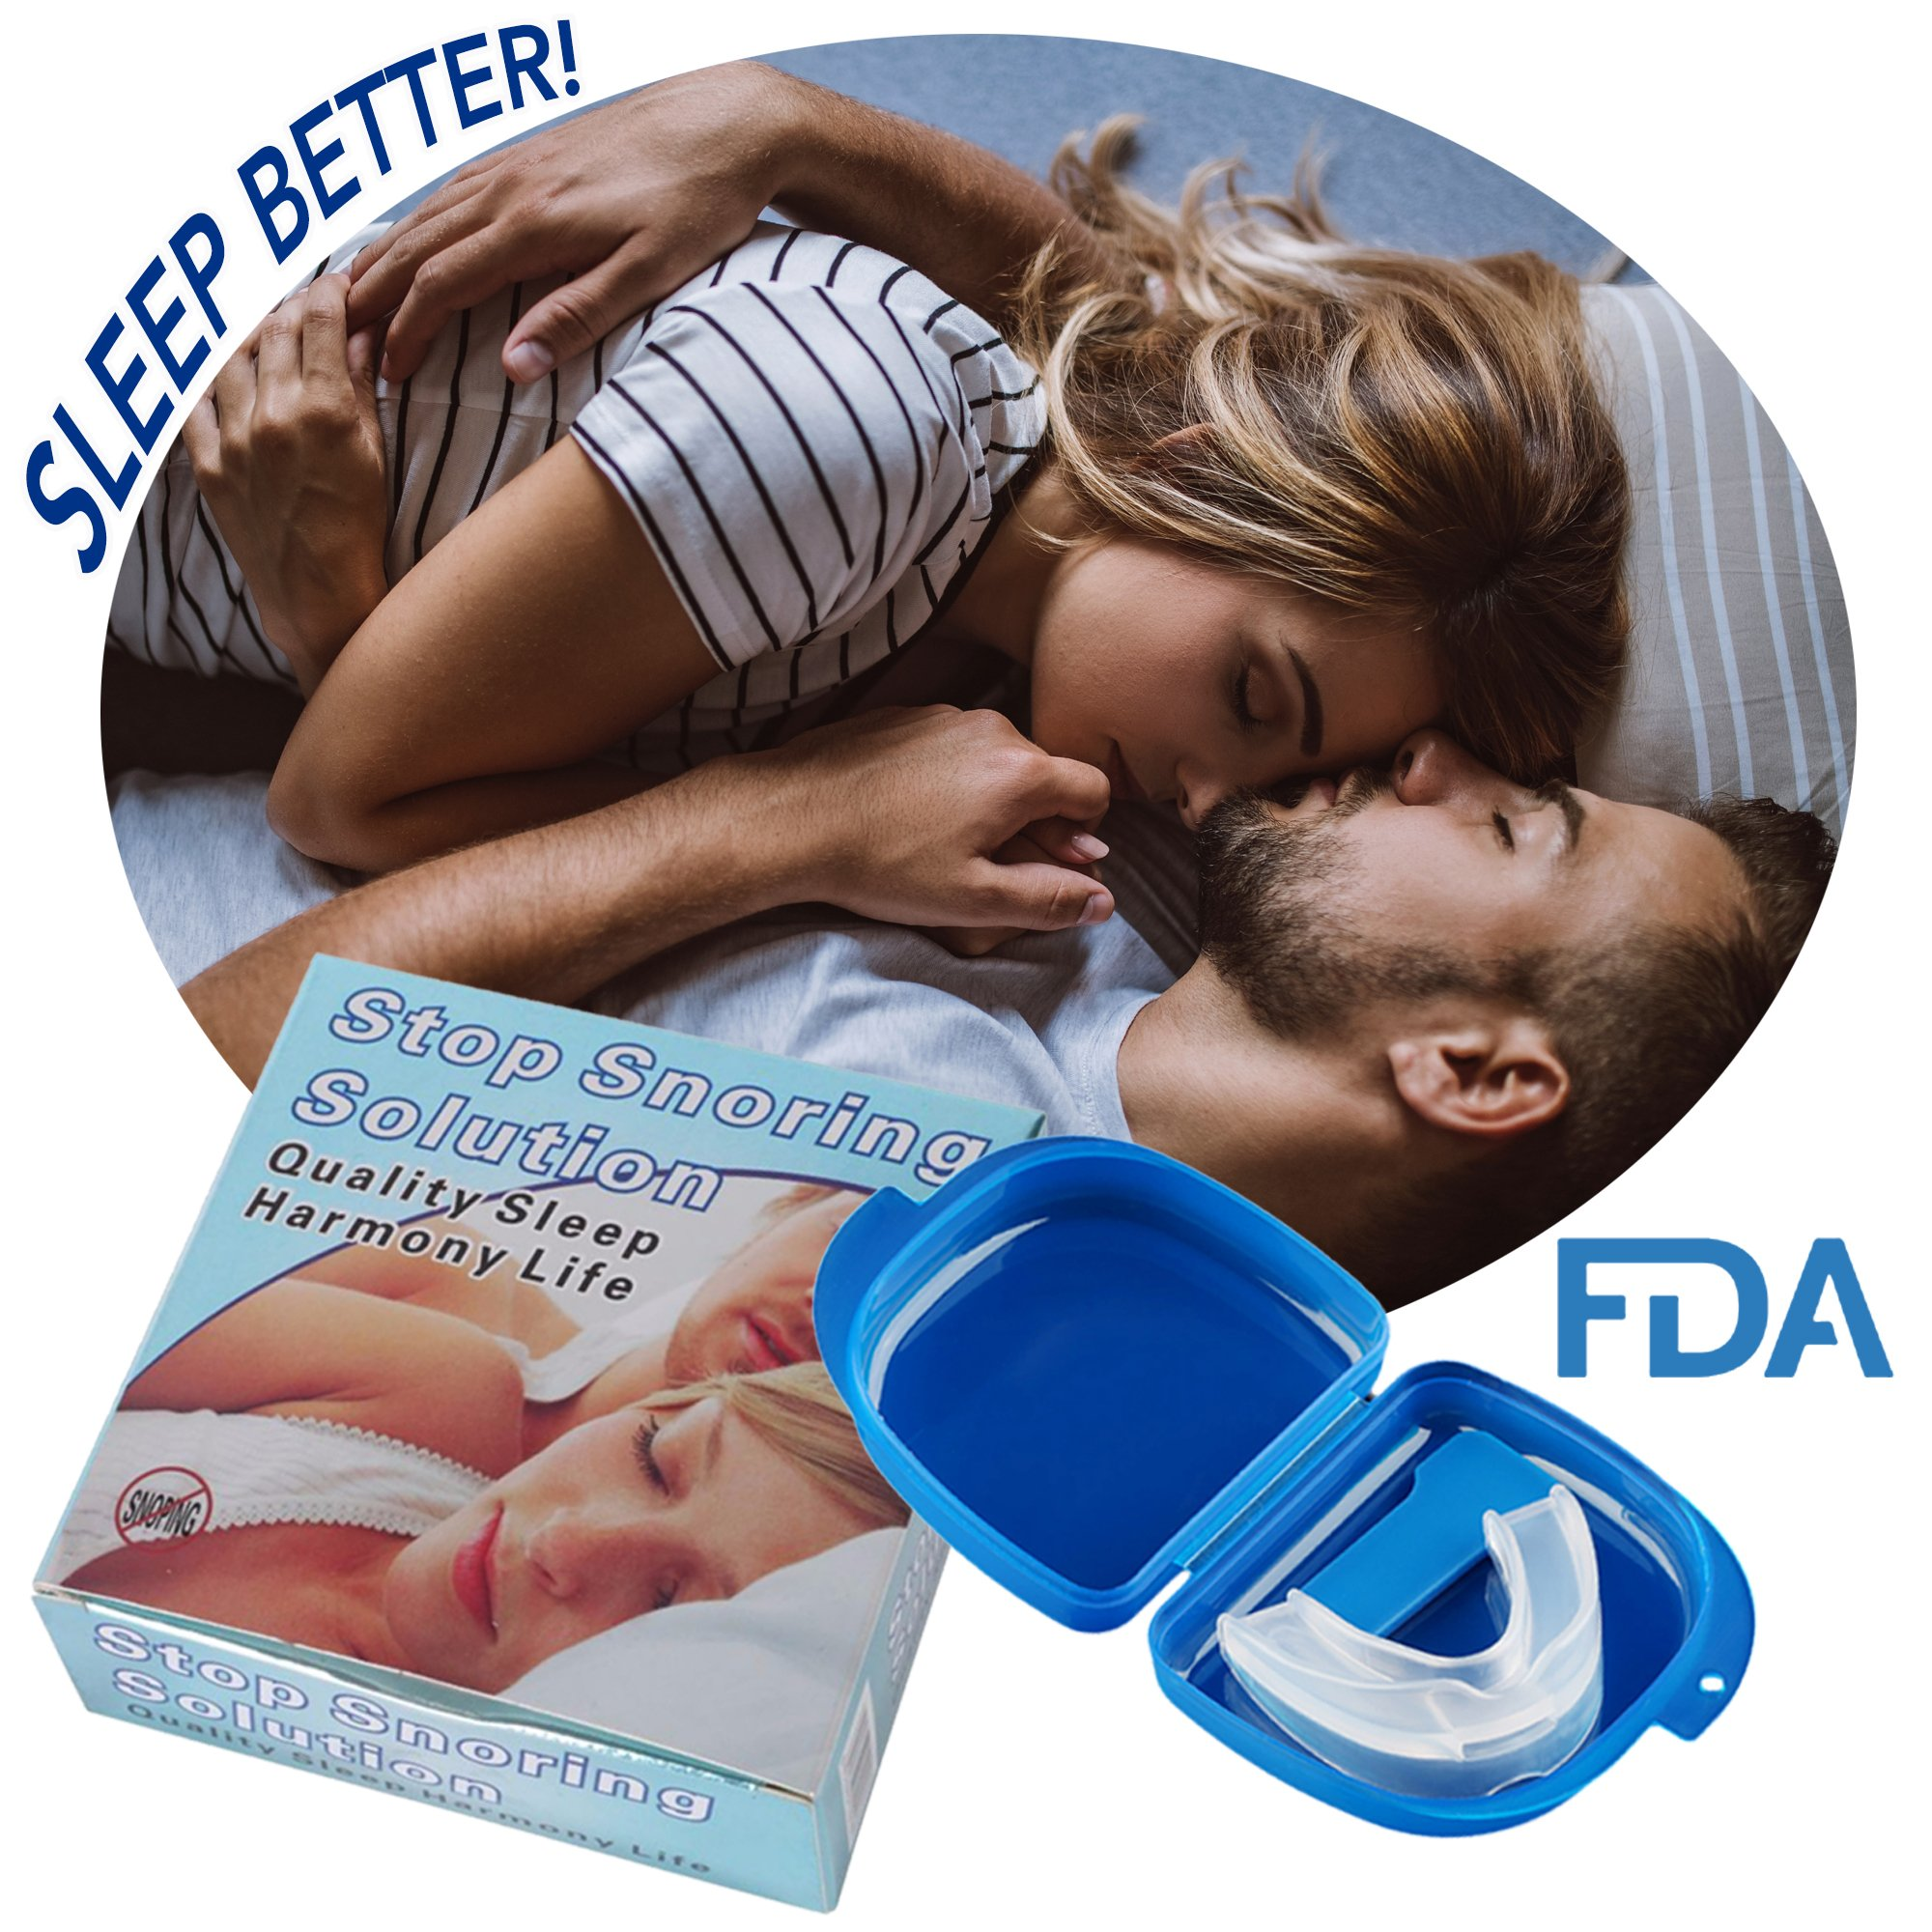 Snoring Solution Anti Snoring Mouthpiece for Men and Women - Snore Stopper Mouth Guard: TMJ Pain Relief and Snore Aid Prevents Snoring- Anti Snoring Device by OSL Supply